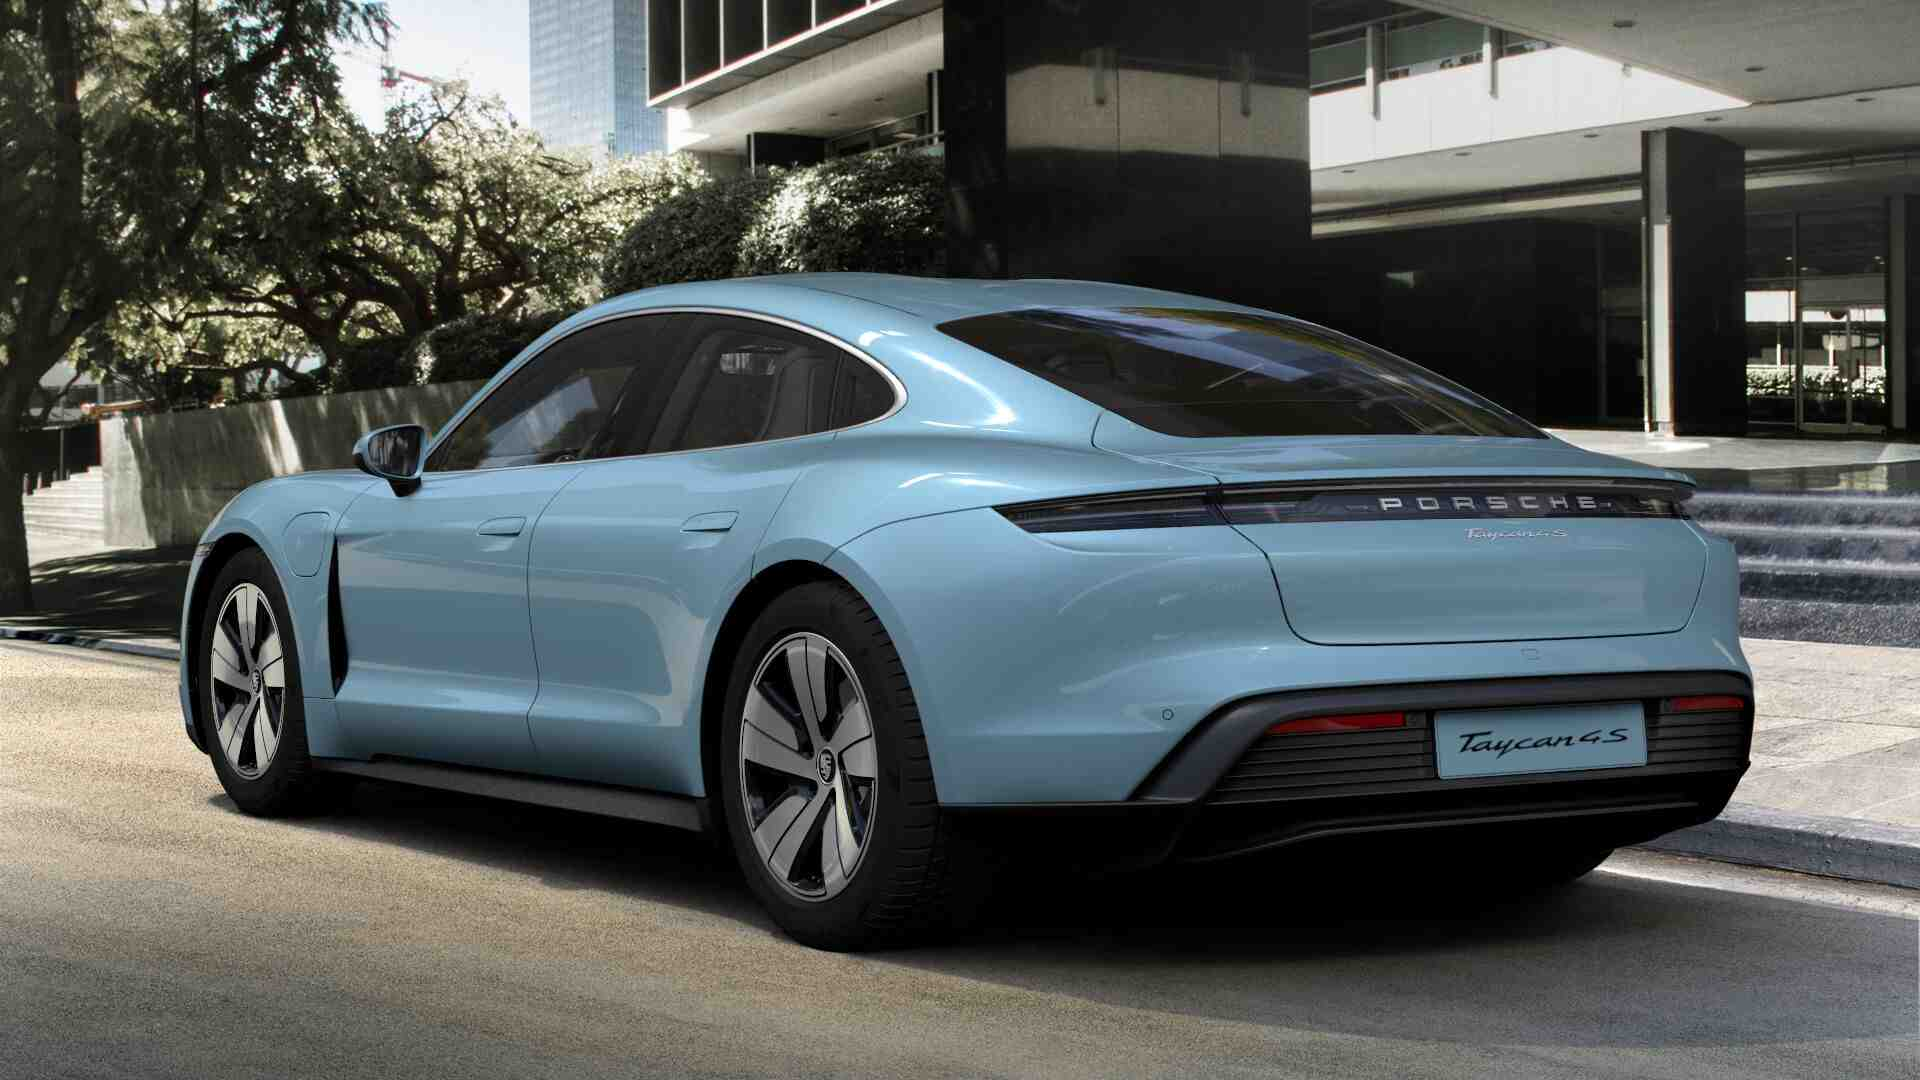 Porsche's Taycan Electric Car